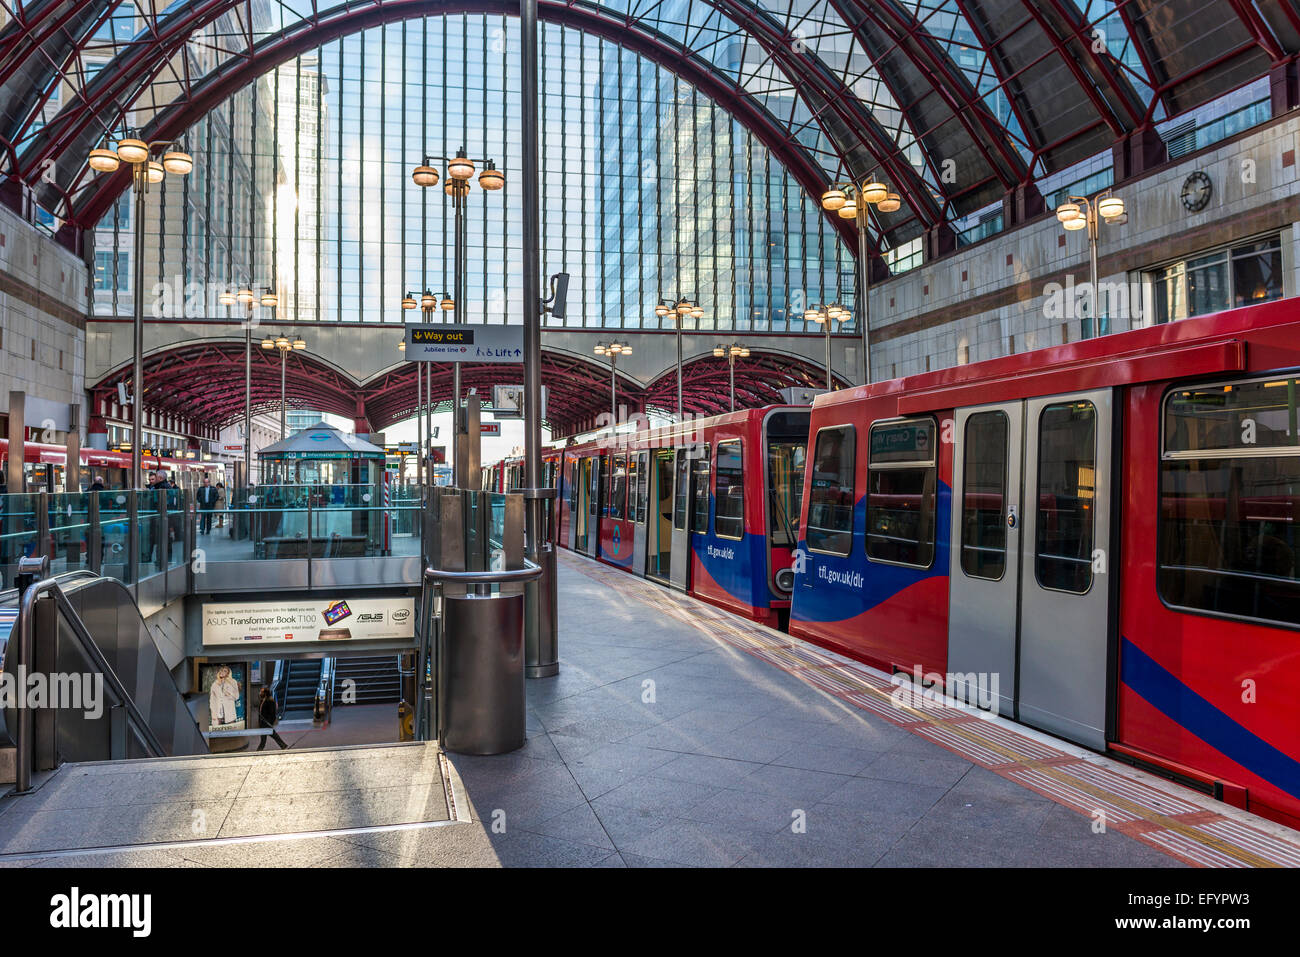 The Docklands Light Railway (DLR) station at Canary Wharf, London's second financial and business district - Stock Image